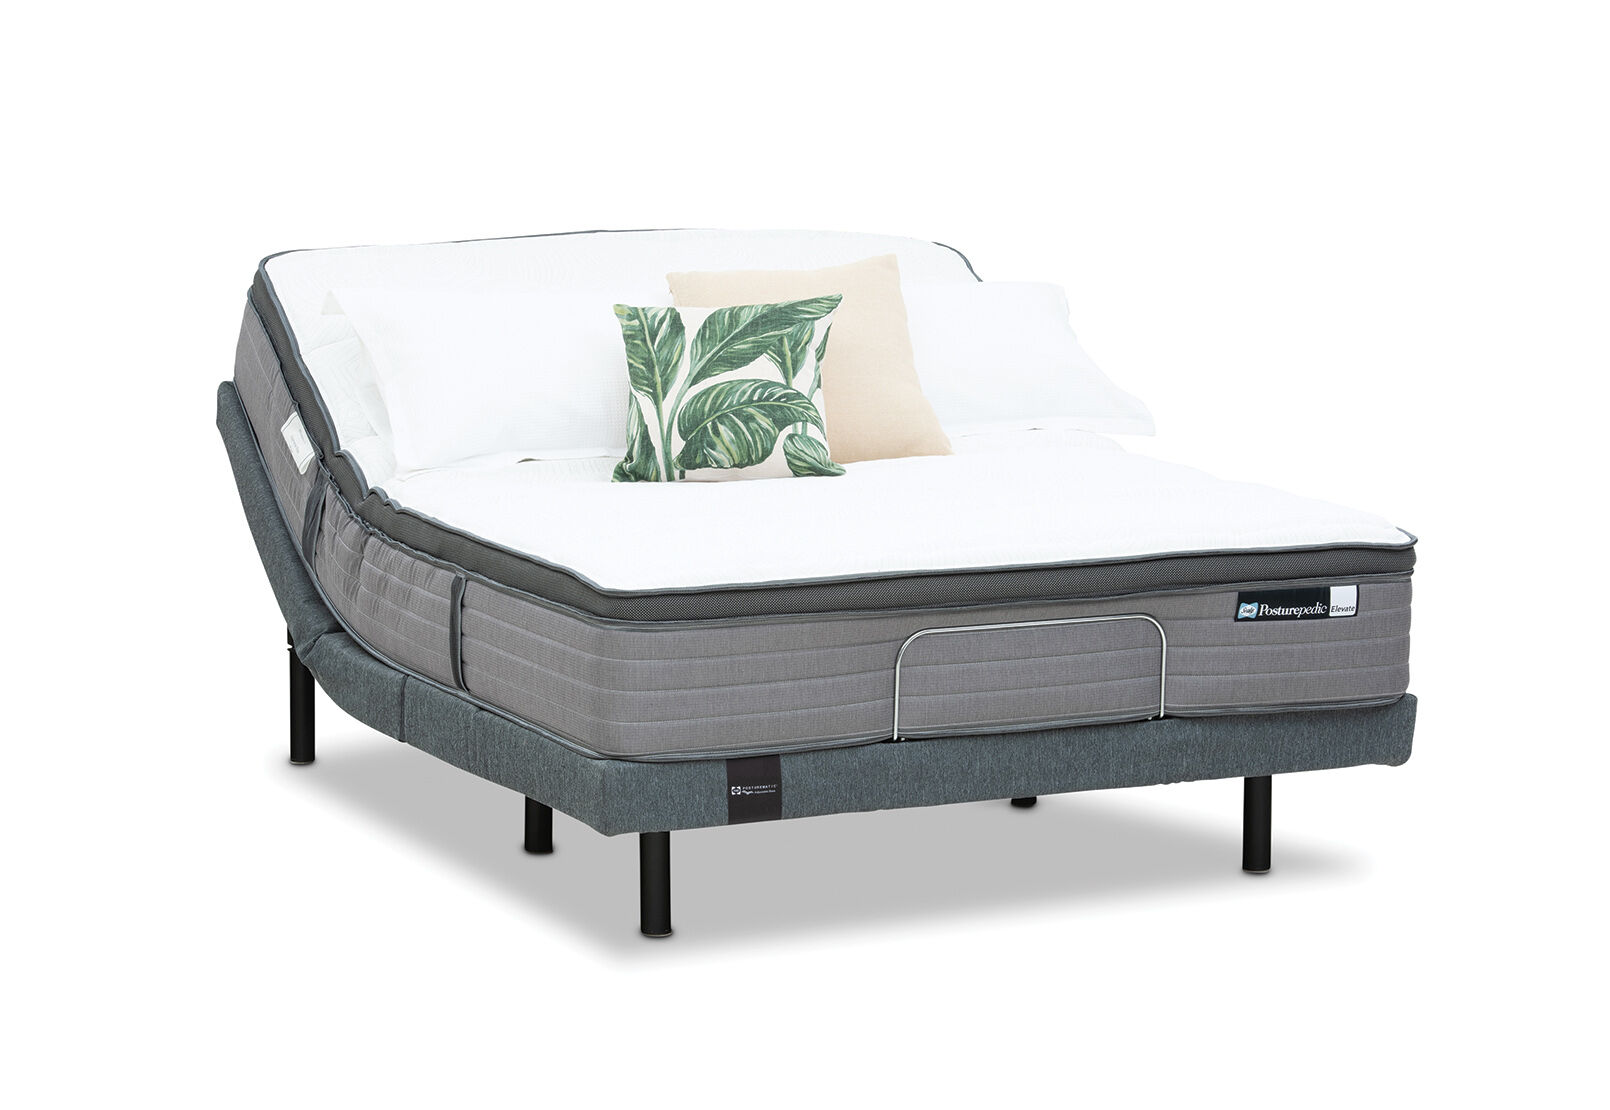 POSTUREPEDIC ELEVATE SUPREME FLEX ULTRA PLUSH